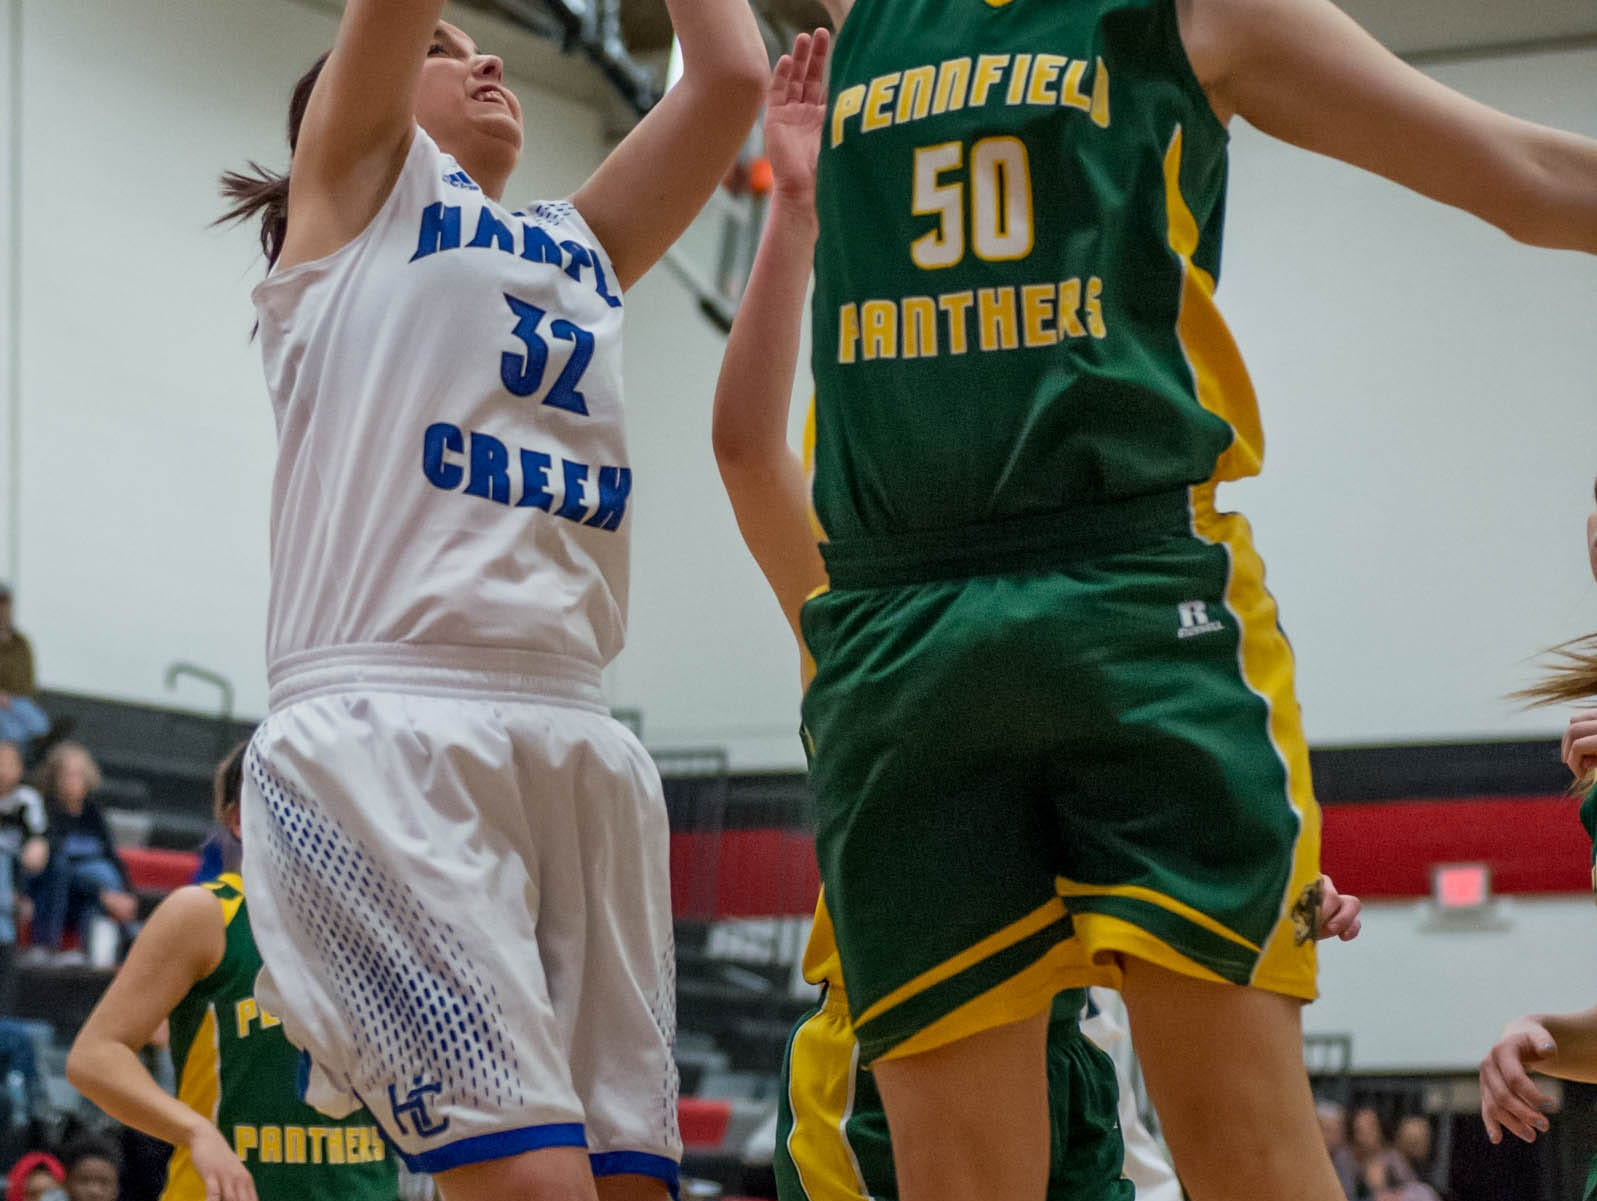 Pennfield's Rachel Swartz (50) blocks the shot of Harper Creek's Kelly Klutts (50) in first round of districts game at Marshall Monday evening.